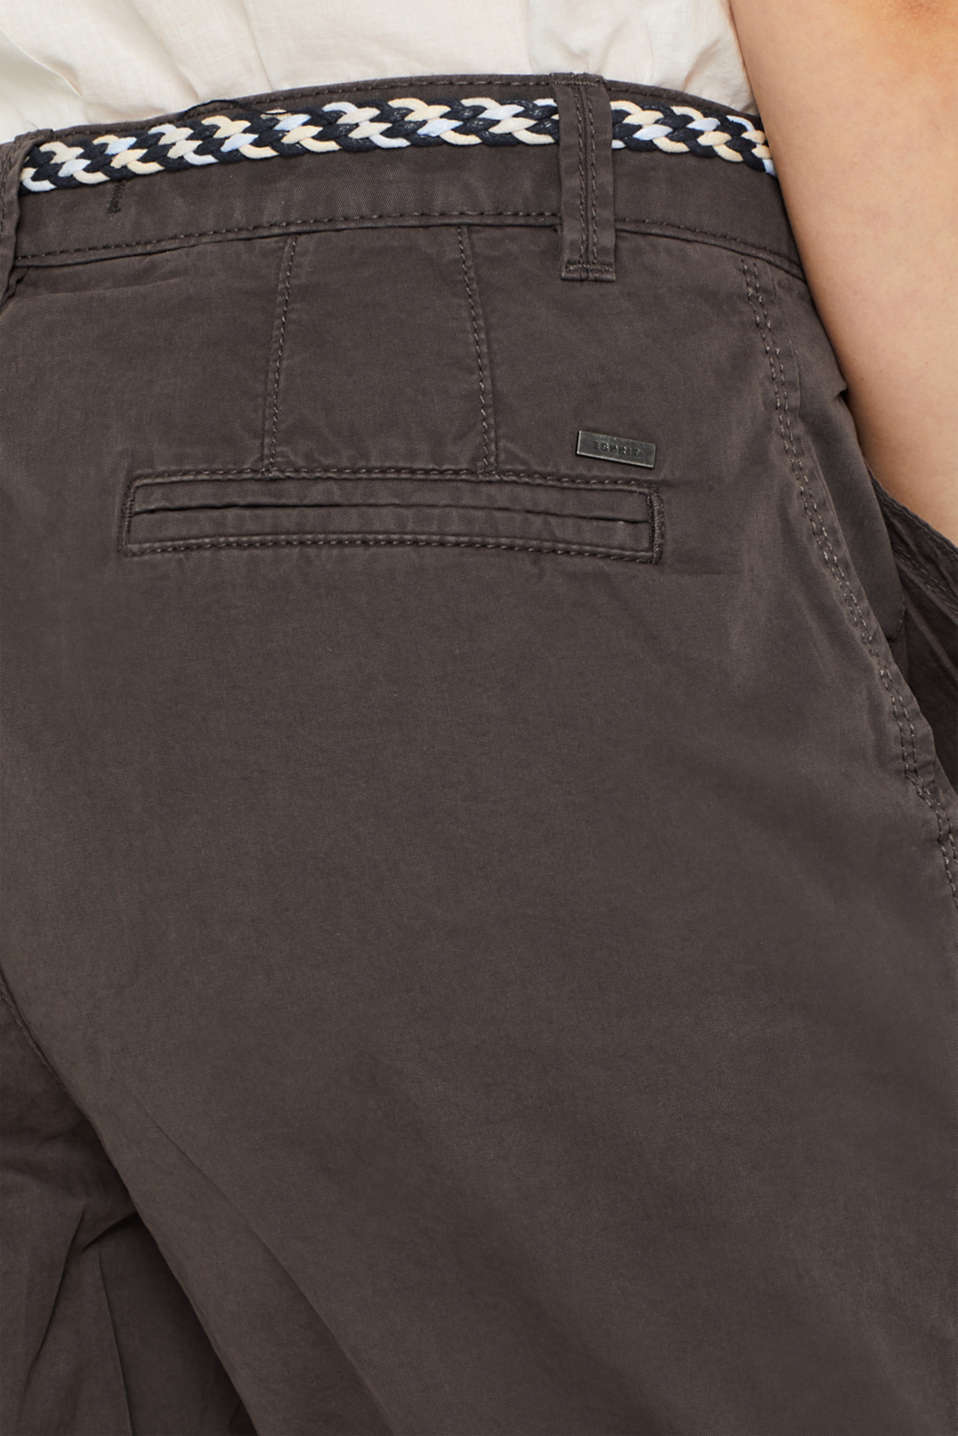 Shorts woven, DARK GREY, detail image number 5